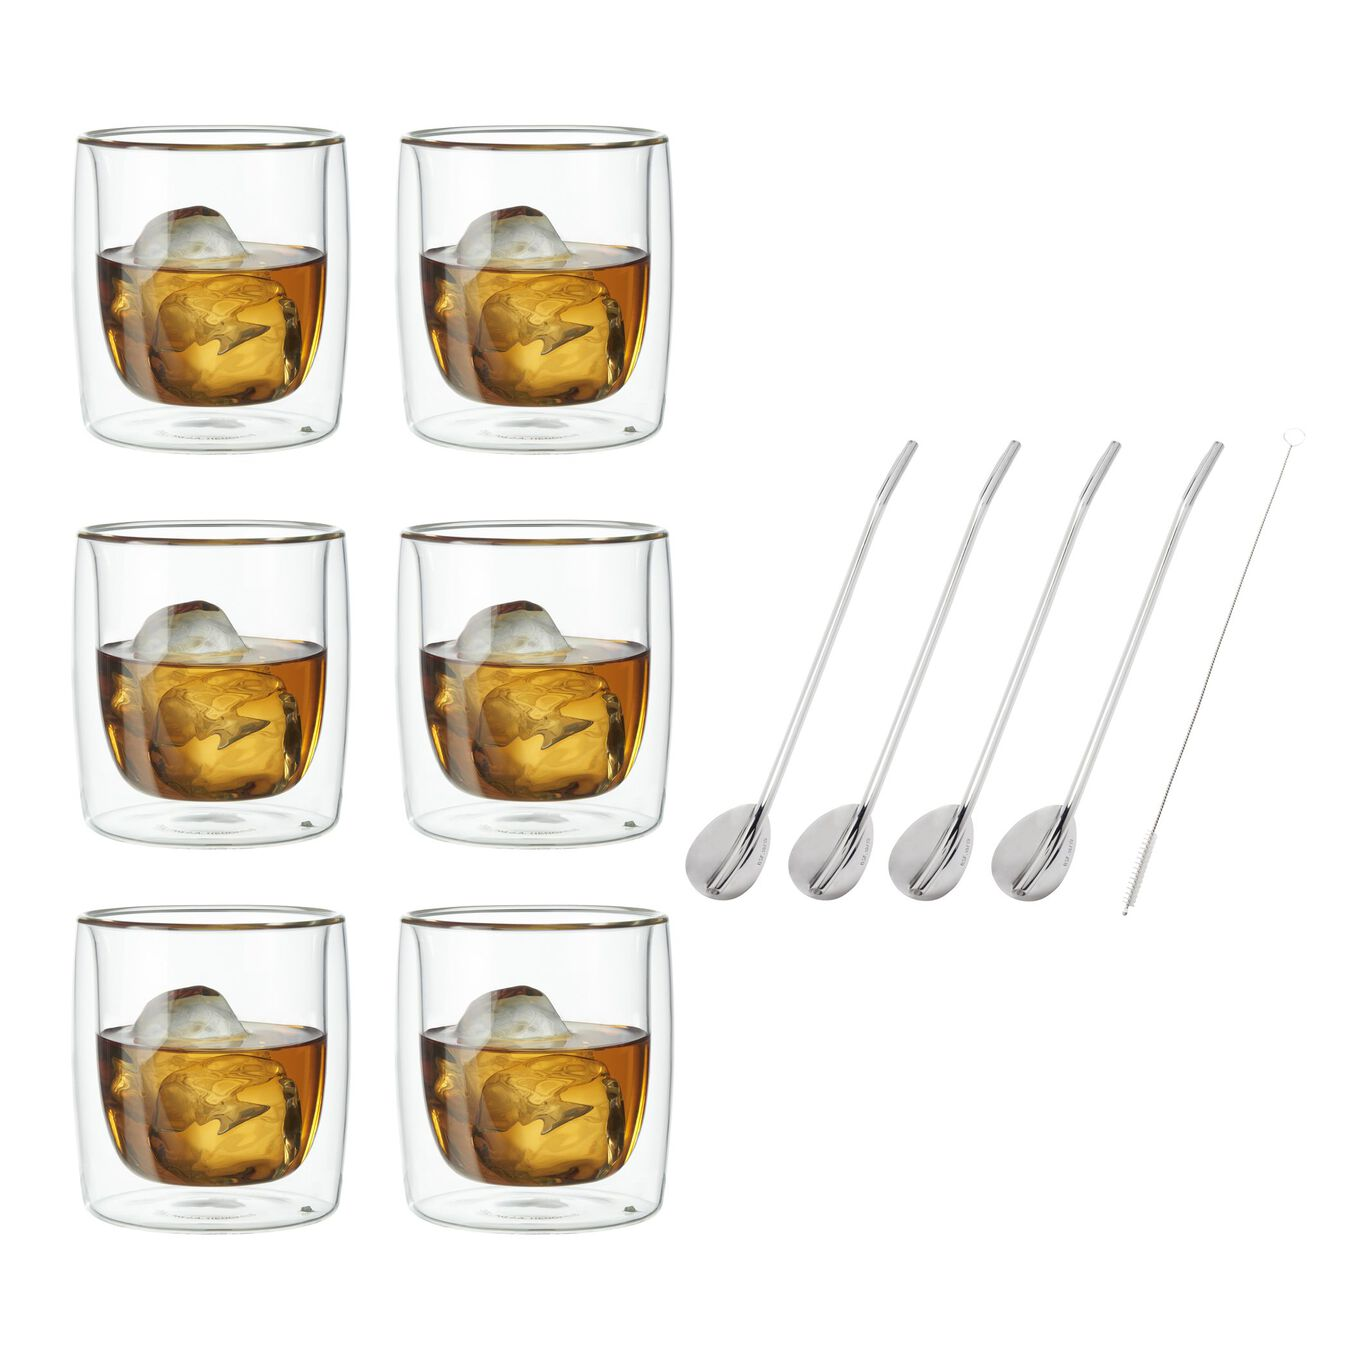 11-pc Whisky glass set, Double wall glas ,,large 1